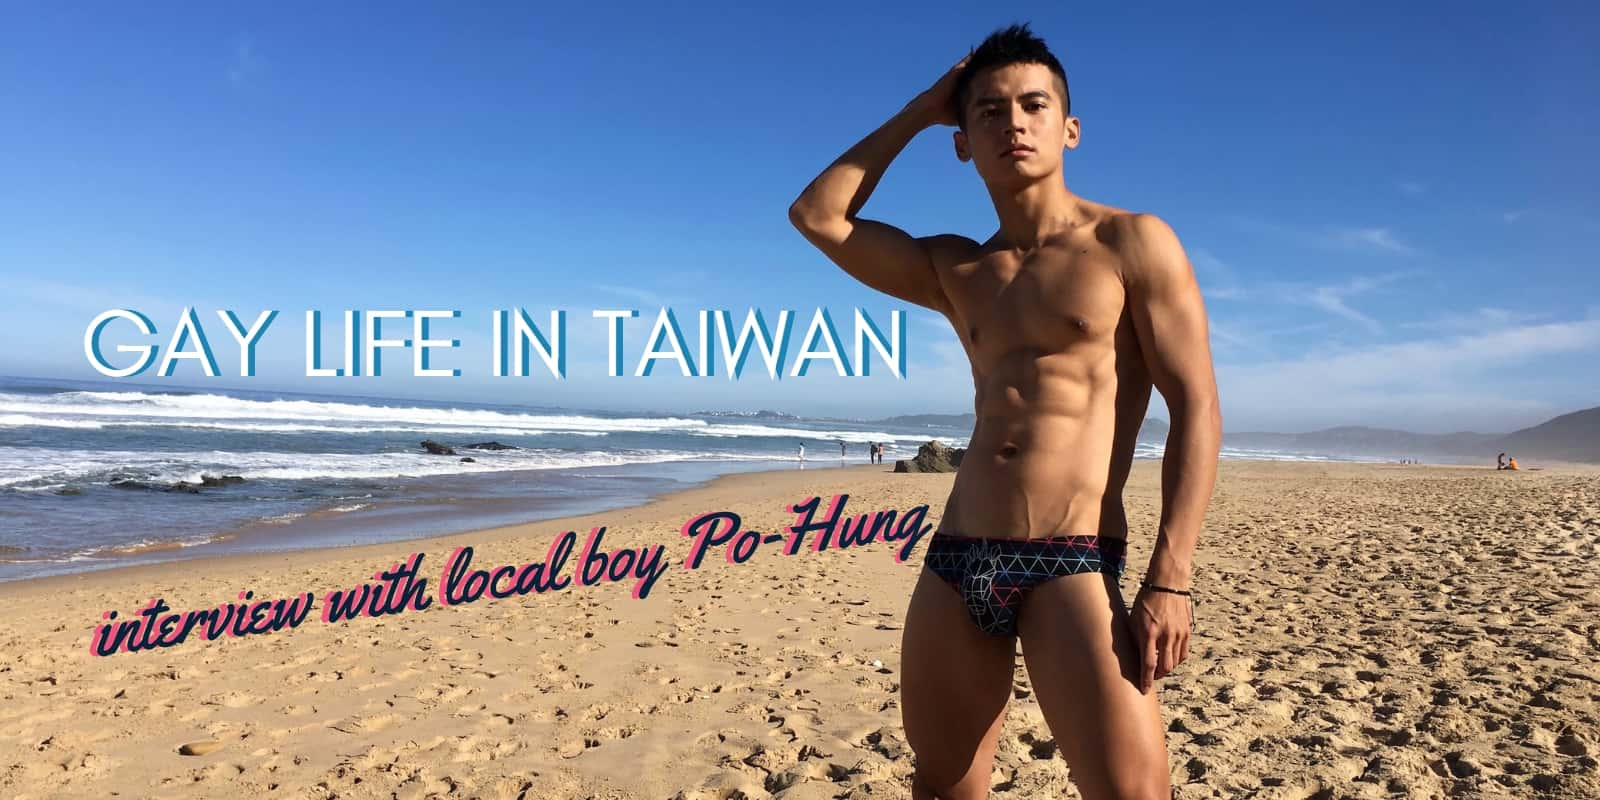 Gay life in Taiwan interview with Po-Hung